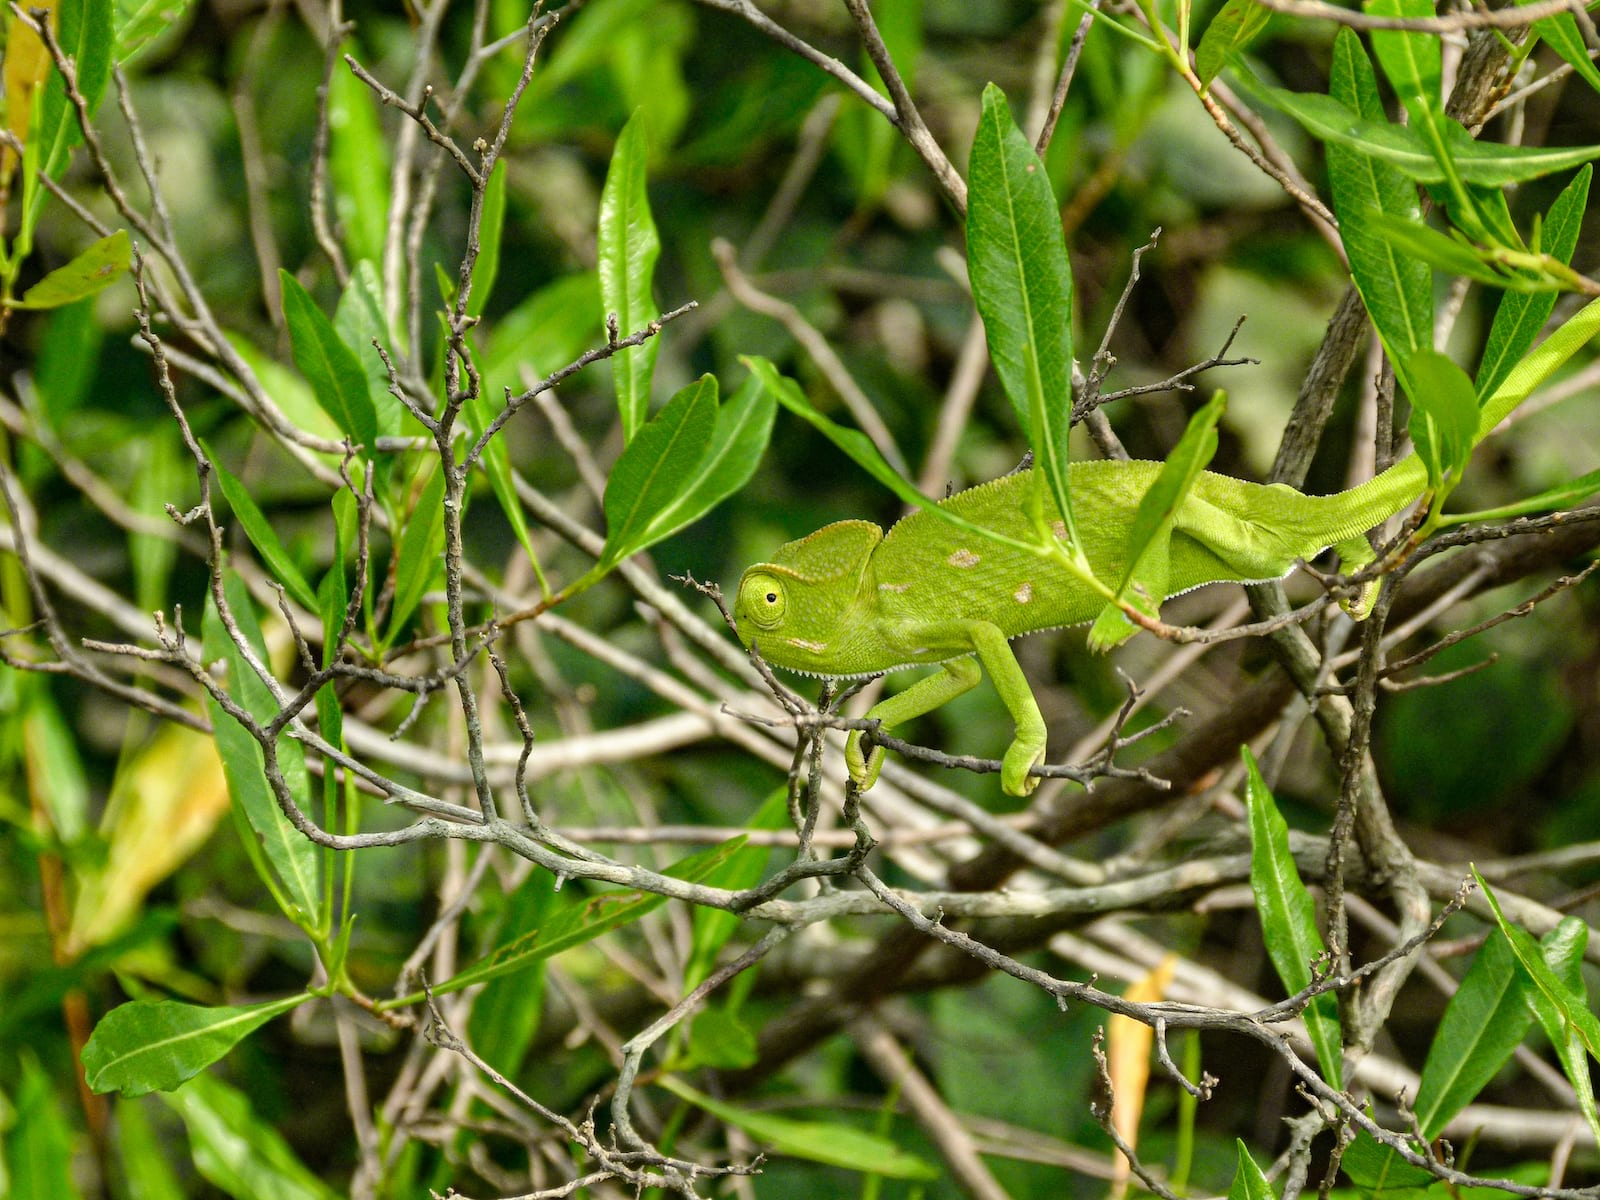 A chameleon watches warily as it basks on a sun-loving shrub, Dodonaea angustifolia. Resistant to strong winds and able to withstand droughts, the shrub keeps a check on soil erosion. Photo: Pranav Balasubramanian  Cover photo: The Ficus benghalensis, commonly known as the banyan, is one of the more common ficus species found in the tropical dry evergreen forests along the Coromandel coast of India.  Cover photo: Photo: PJeganathan, CC BY-SA 4.0